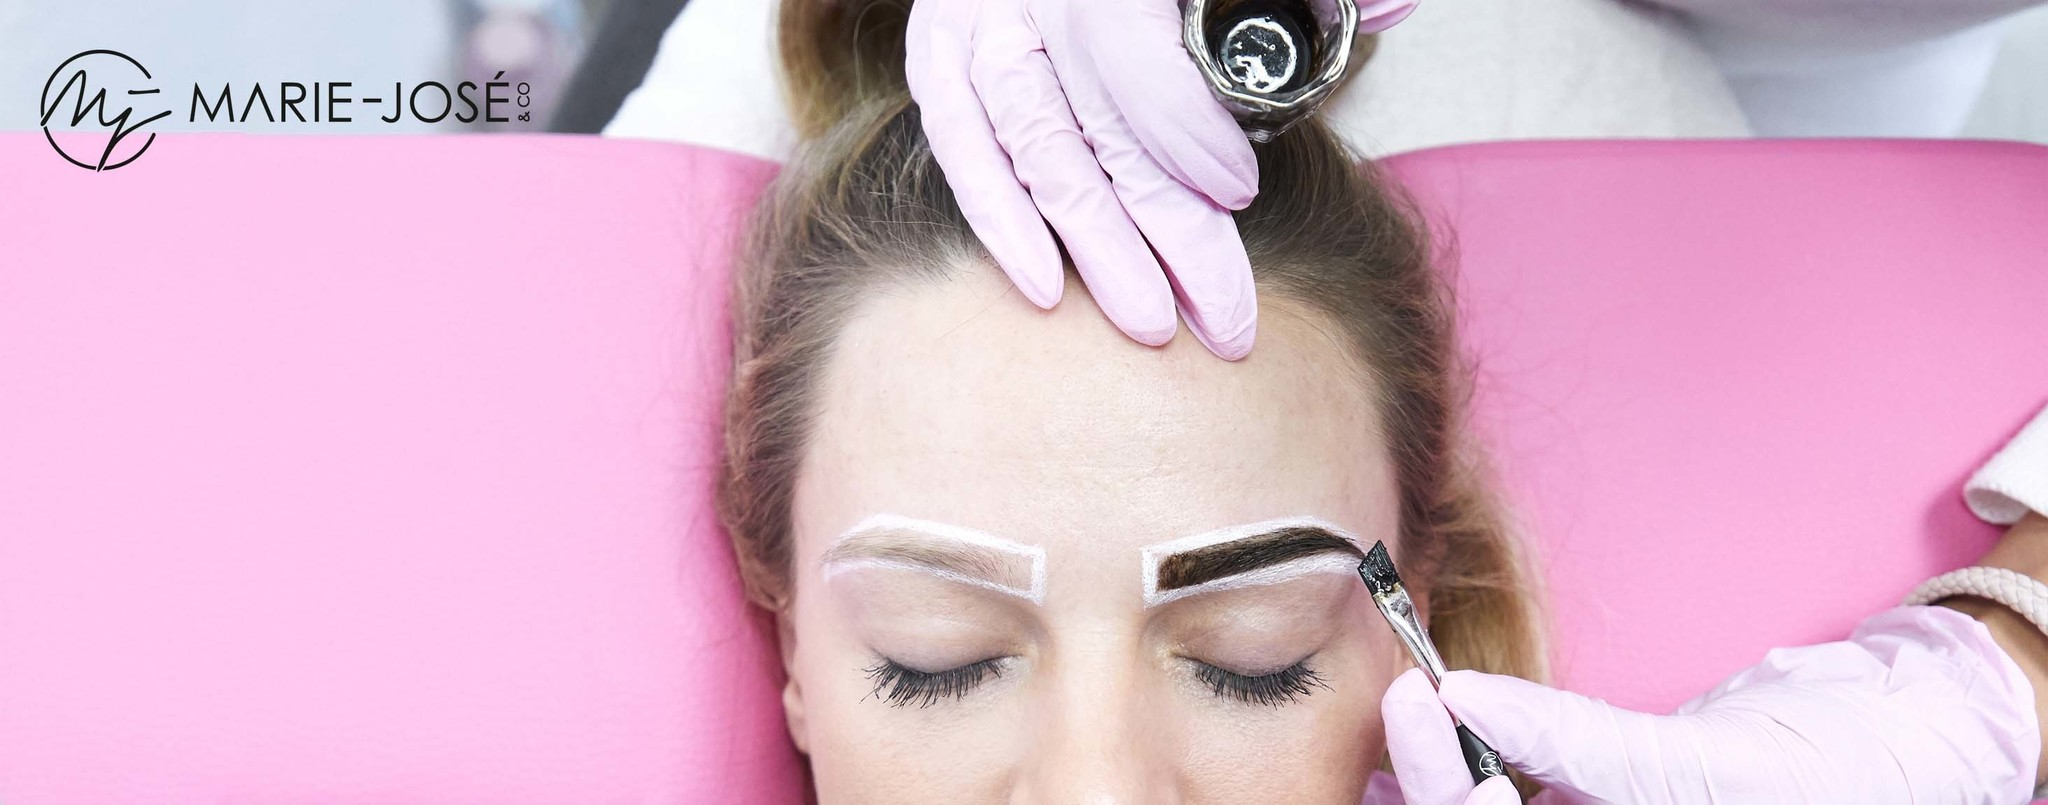 Dye your Brows with Eyebrow Henna - Marie-José & Co